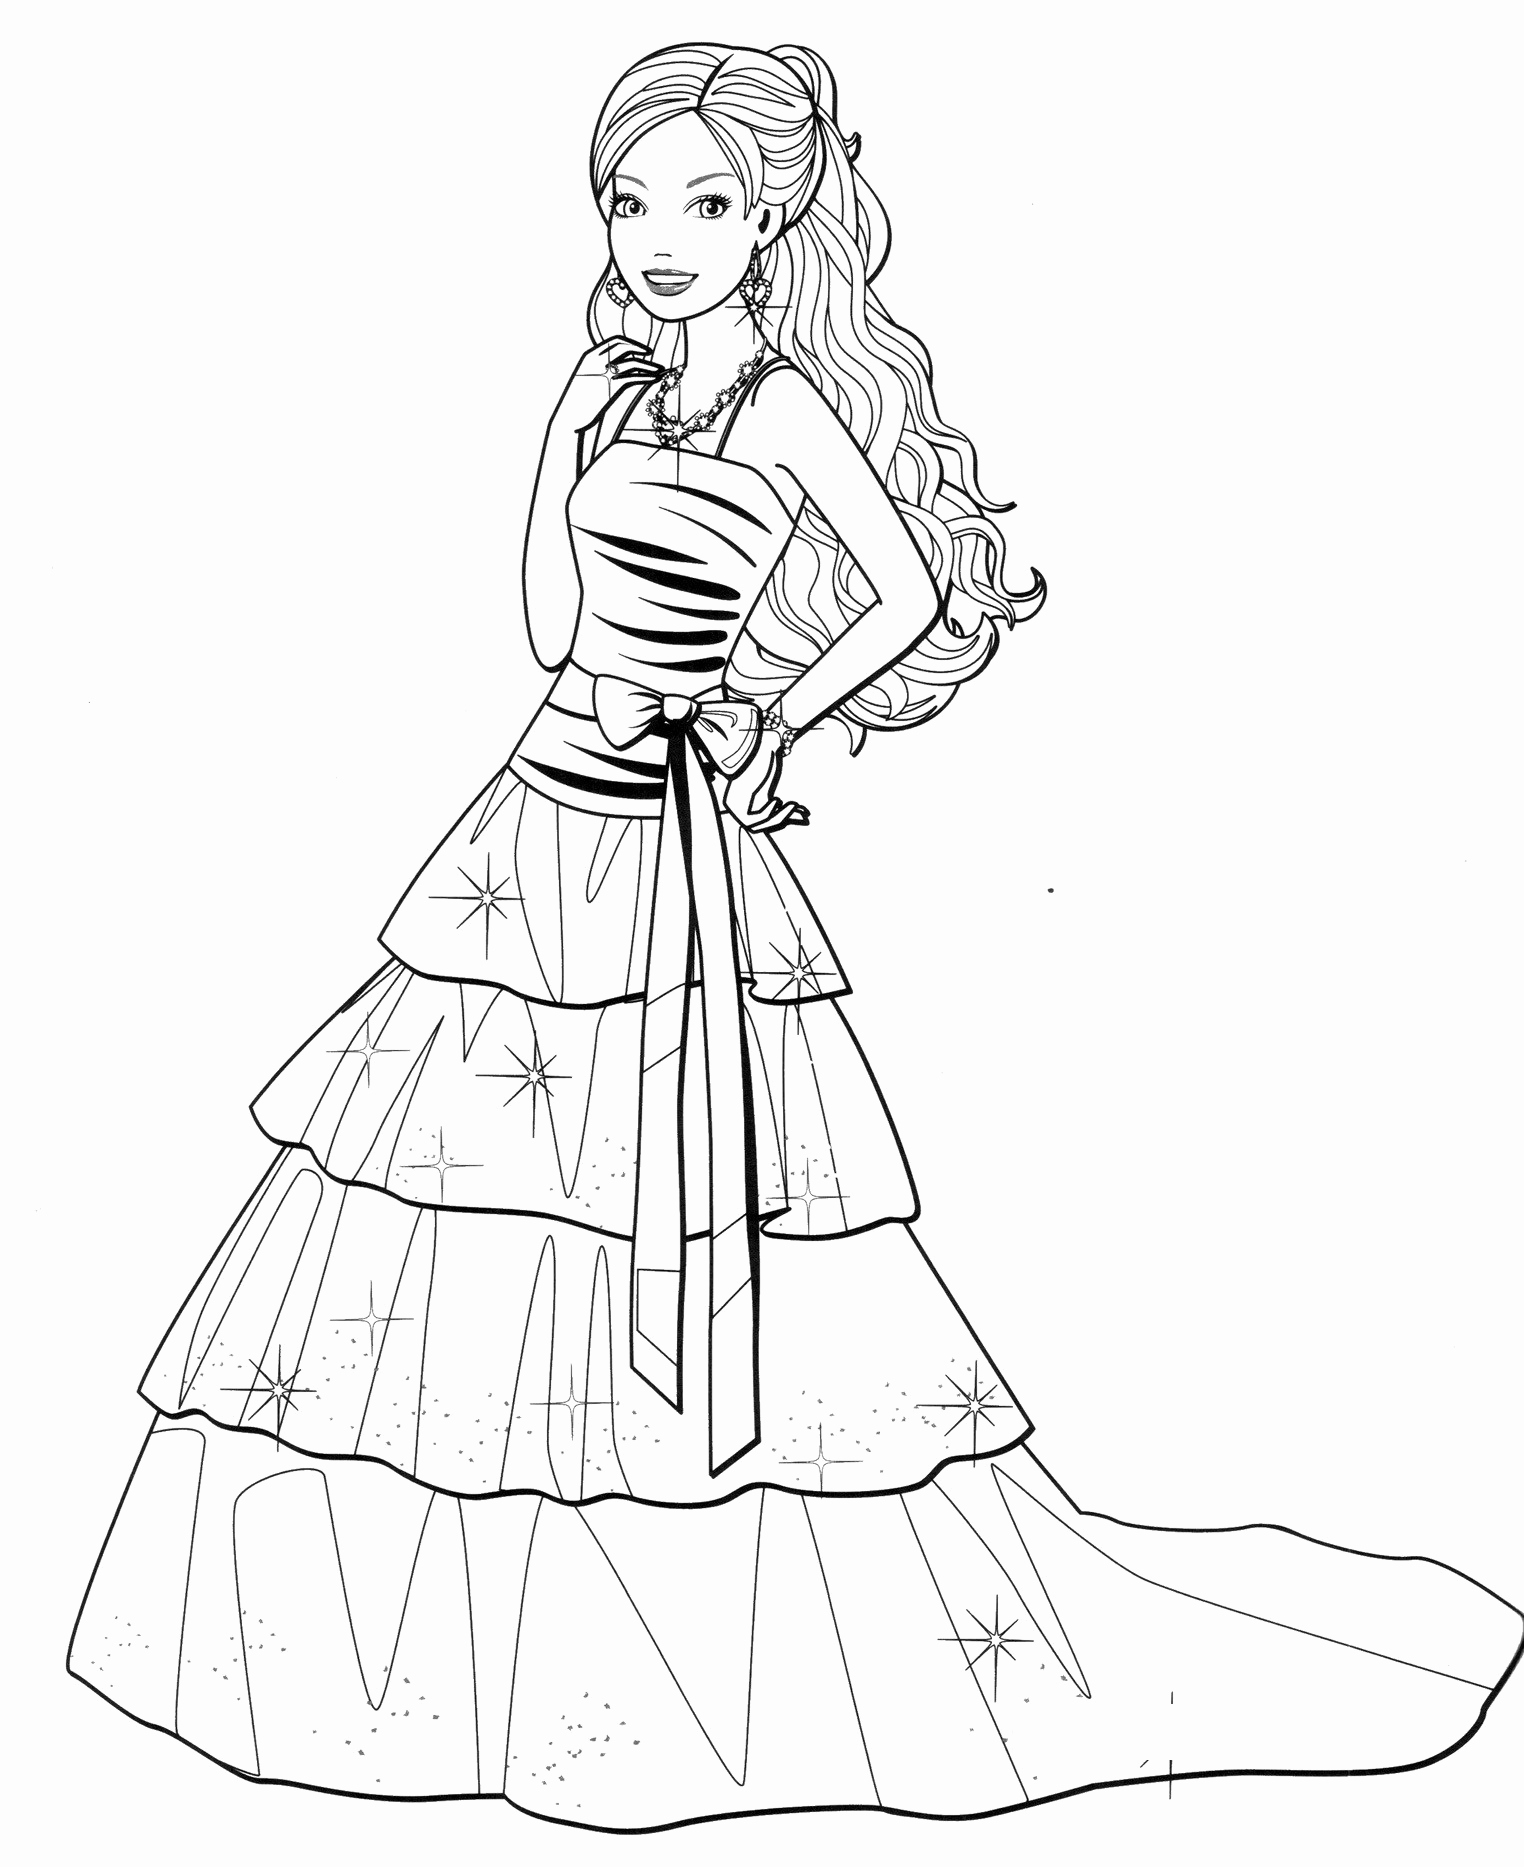 Barbie Dress Coloring Pages At Getdrawings Com Free For